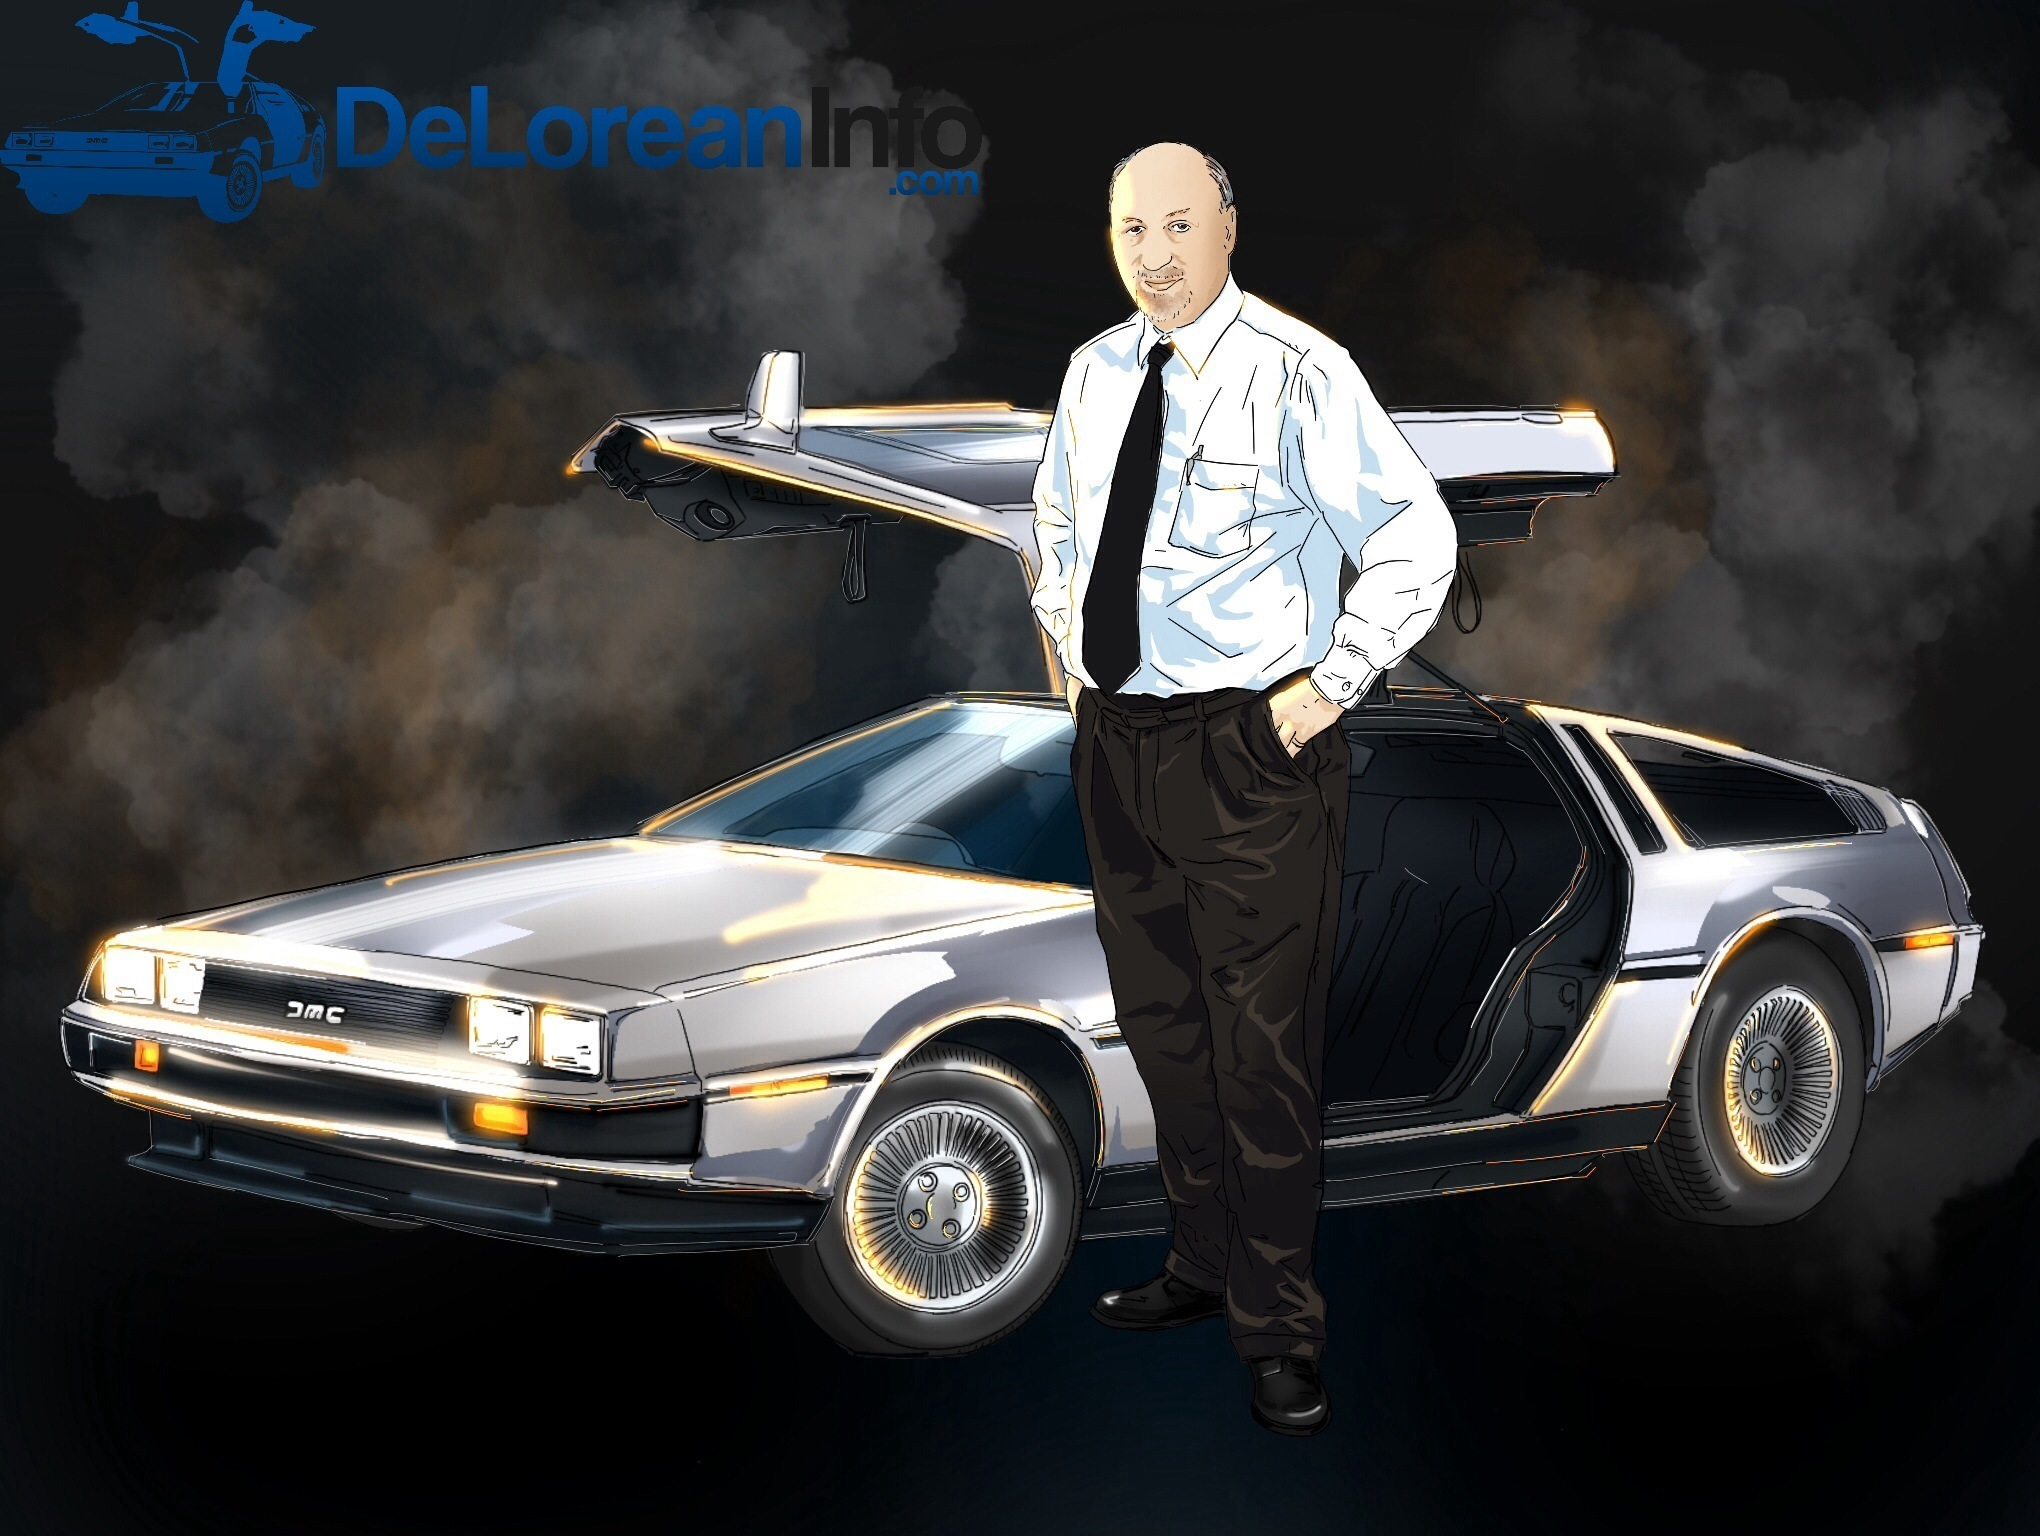 Tony De Falco with the DeLorean DMC-12